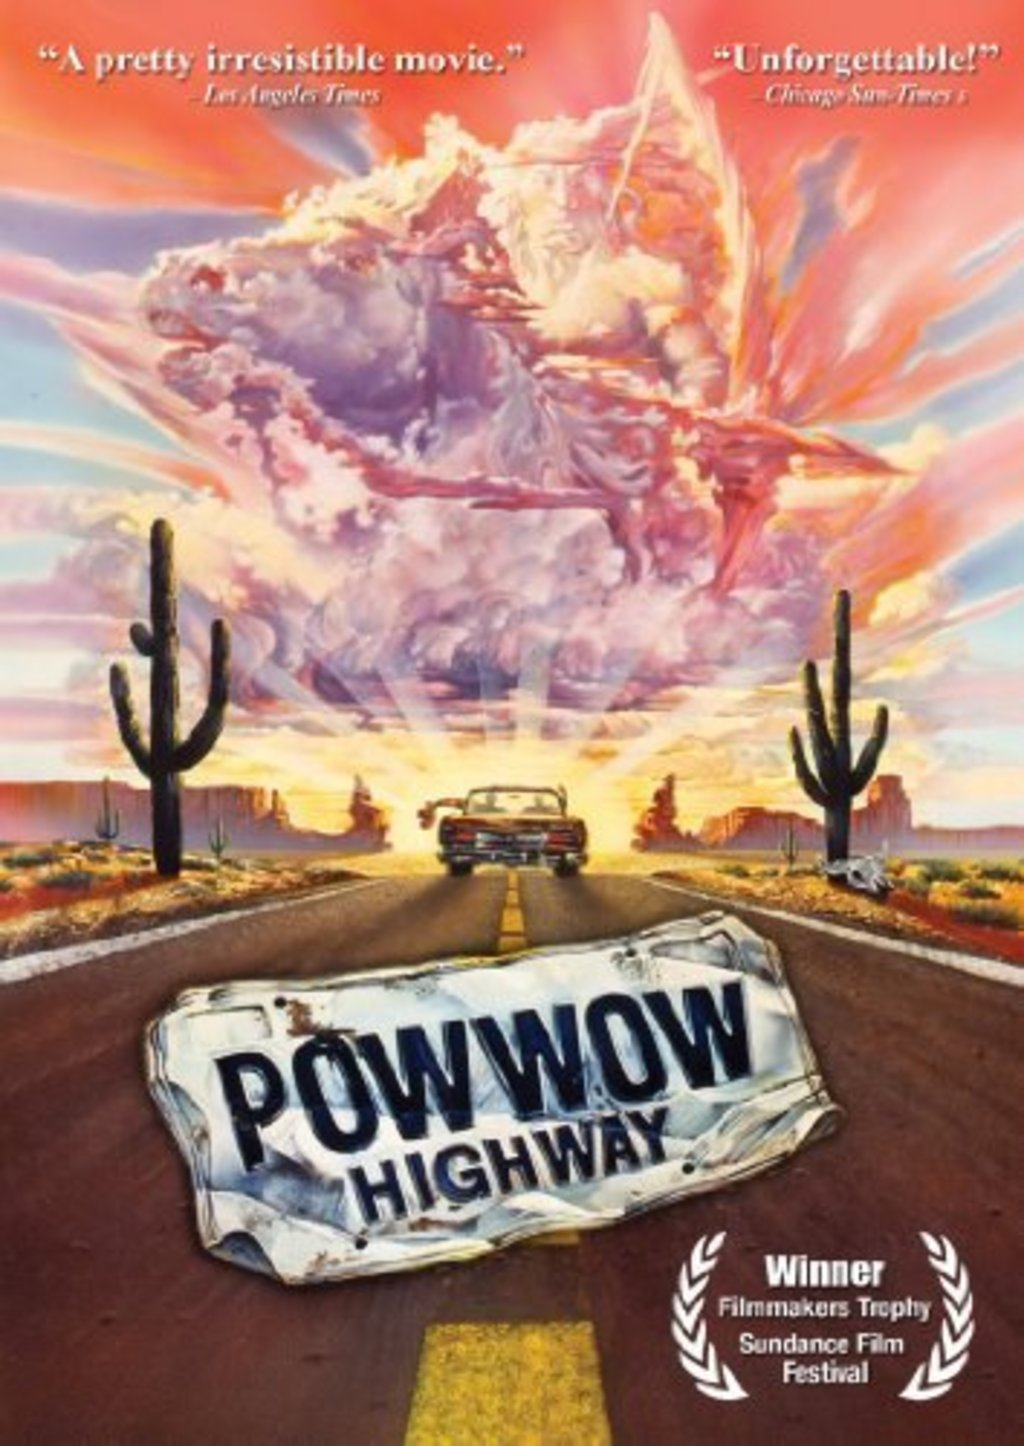 an analysis of the movie powwow highway Pow wow highway has been added to your cart powwow highway is a tale of native american life today the movie does have a few plot flaws.